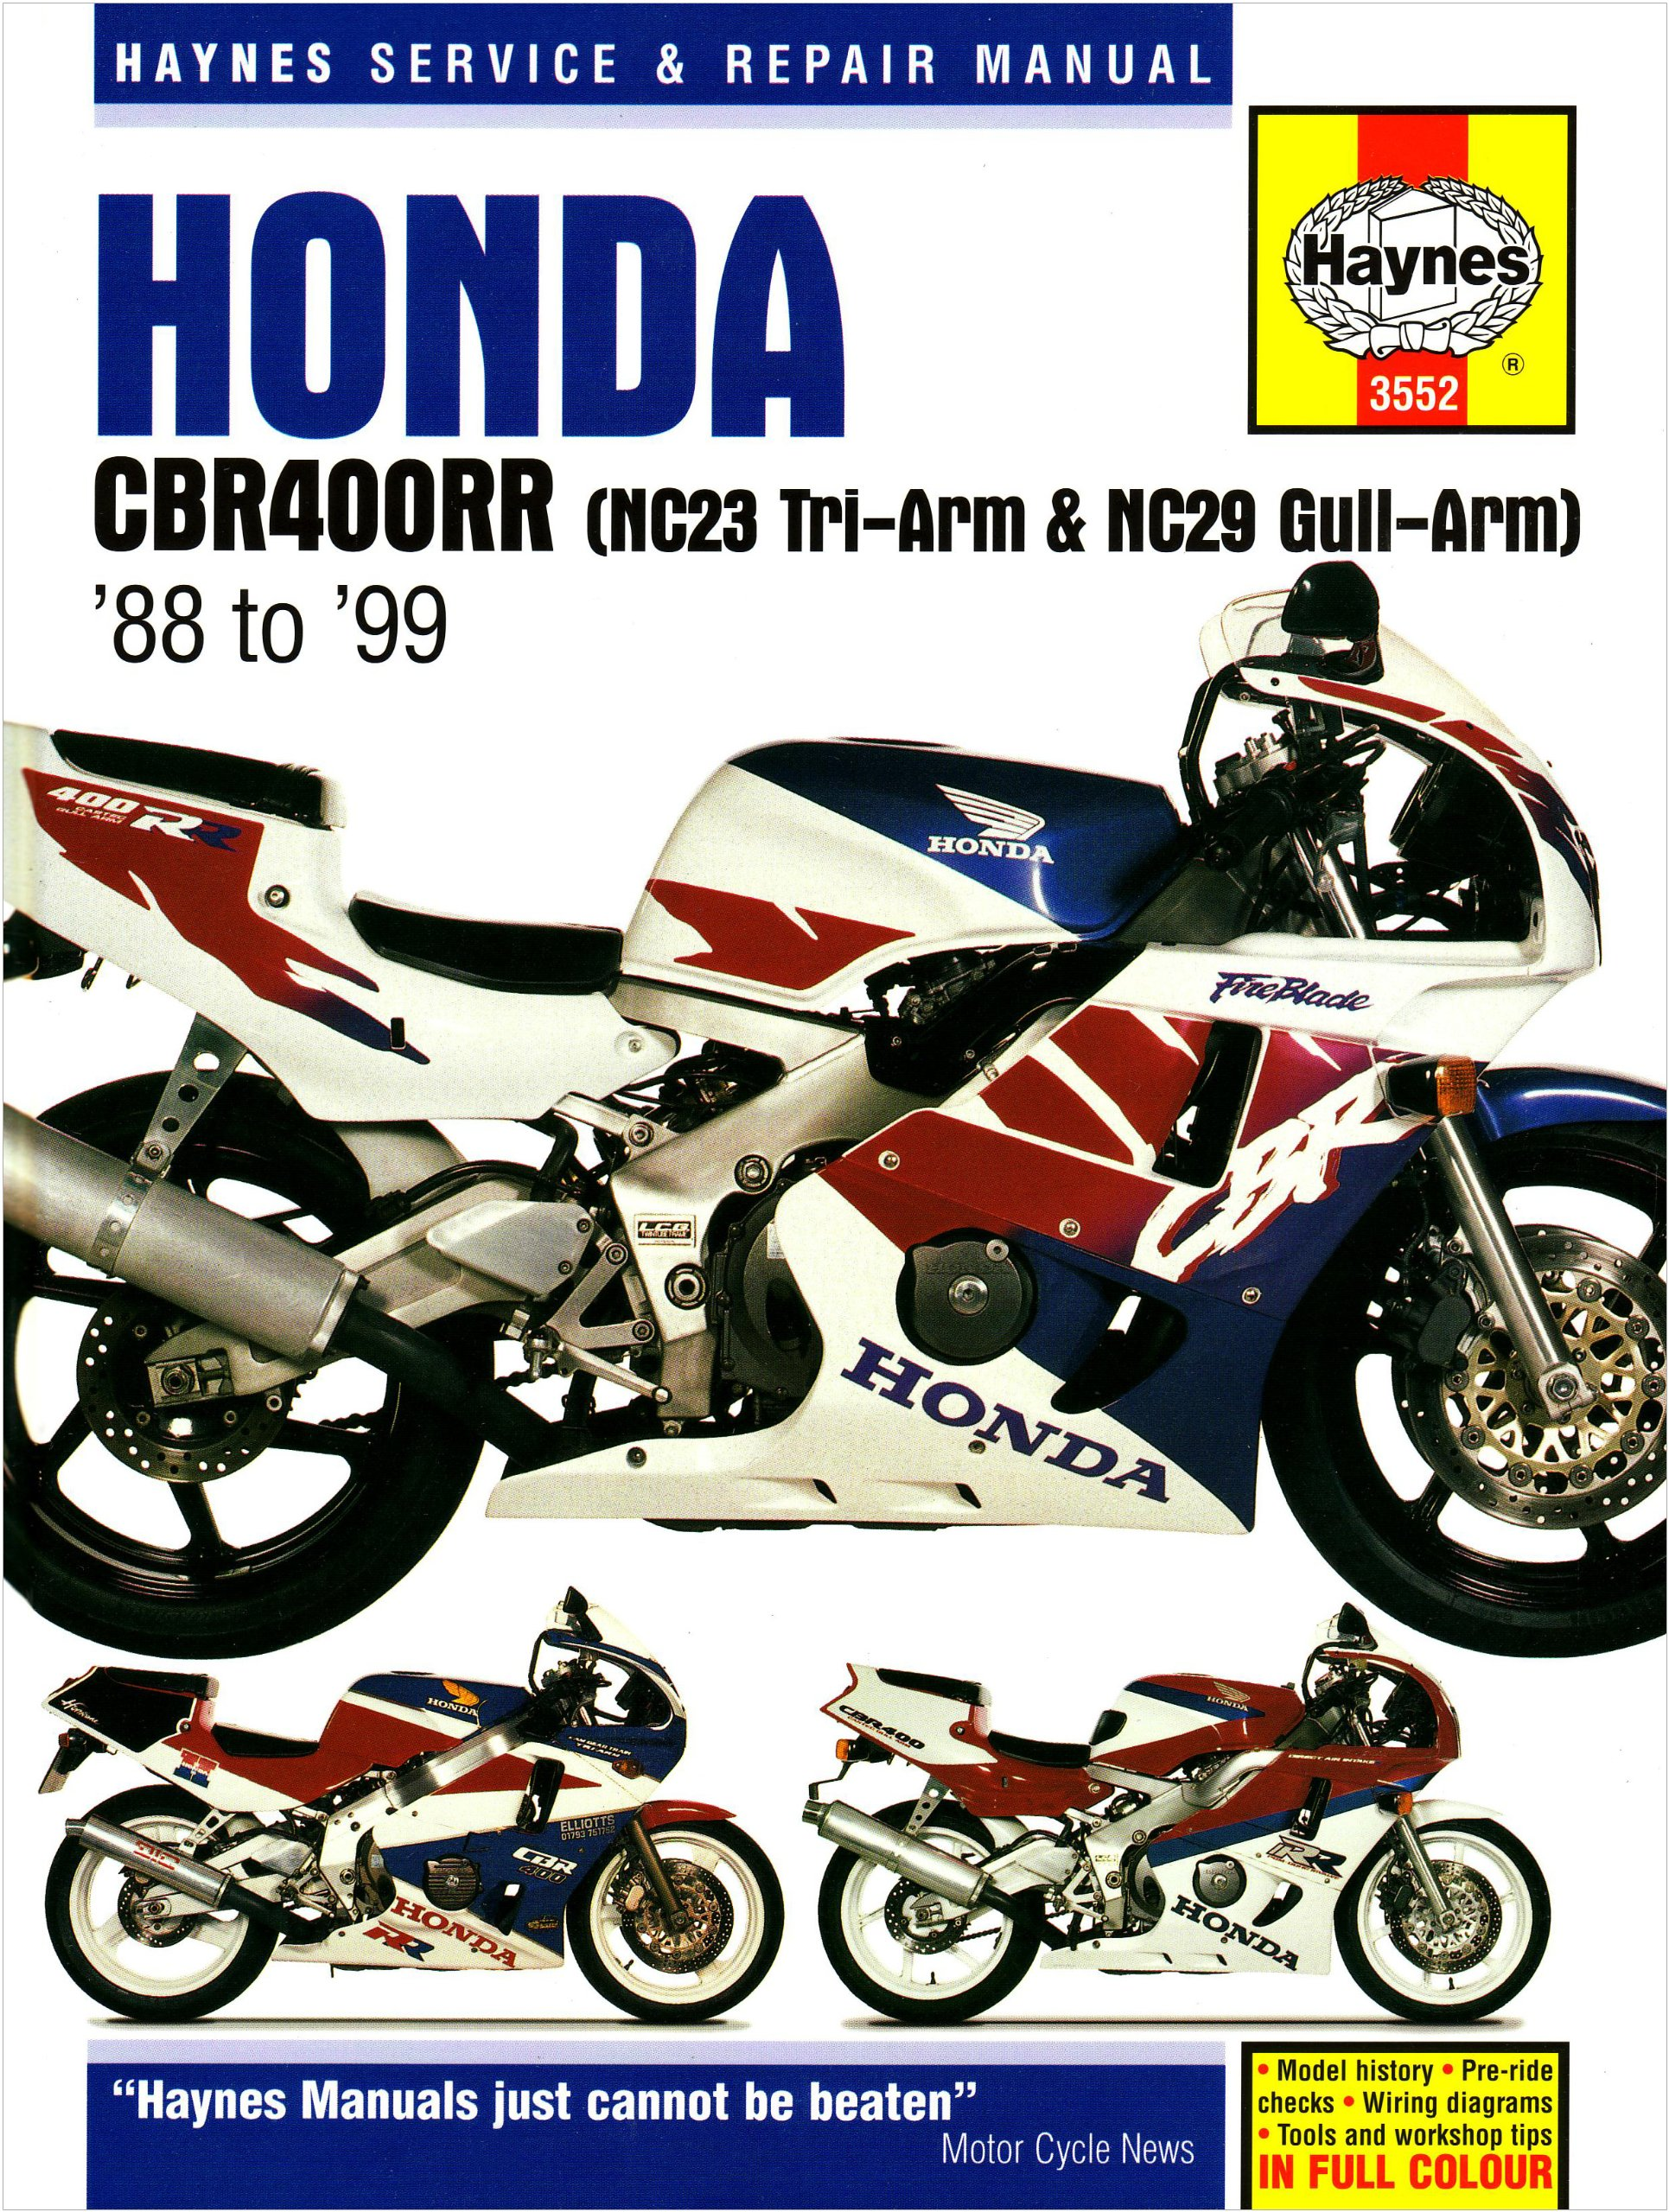 honda cbr400rr nc29 gullarm 1990 99 service and repair manual rh amazon com Honda CBR 400 NBC29 Jobspot